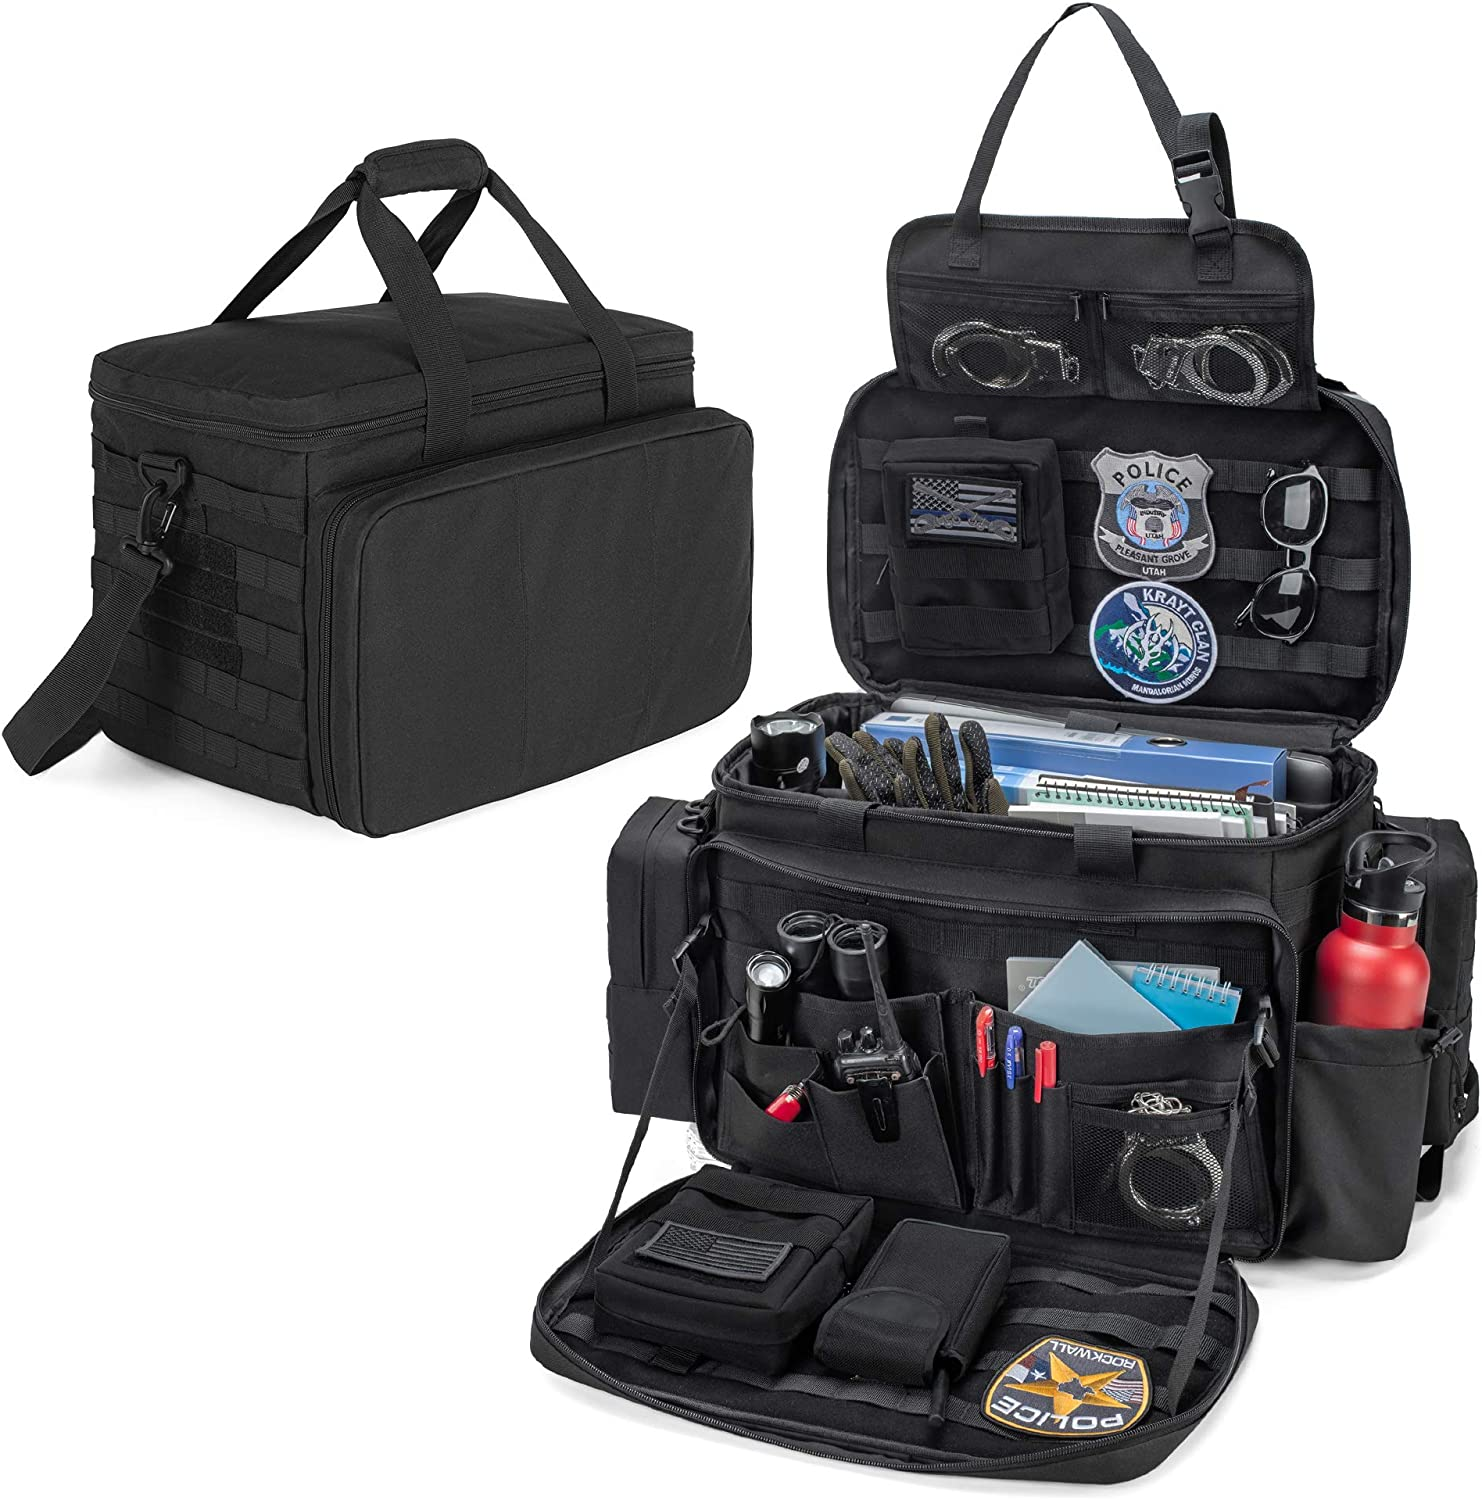 """Trunab Patrol Bag, Police Gear Bag, Car Front Seat Organizer for Law Enforcement with Compartment for up to 15.6"""" Laptop, Drinks Holder, MOLLE Compatible, Fits Vehicle Passenger Seat, Black"""